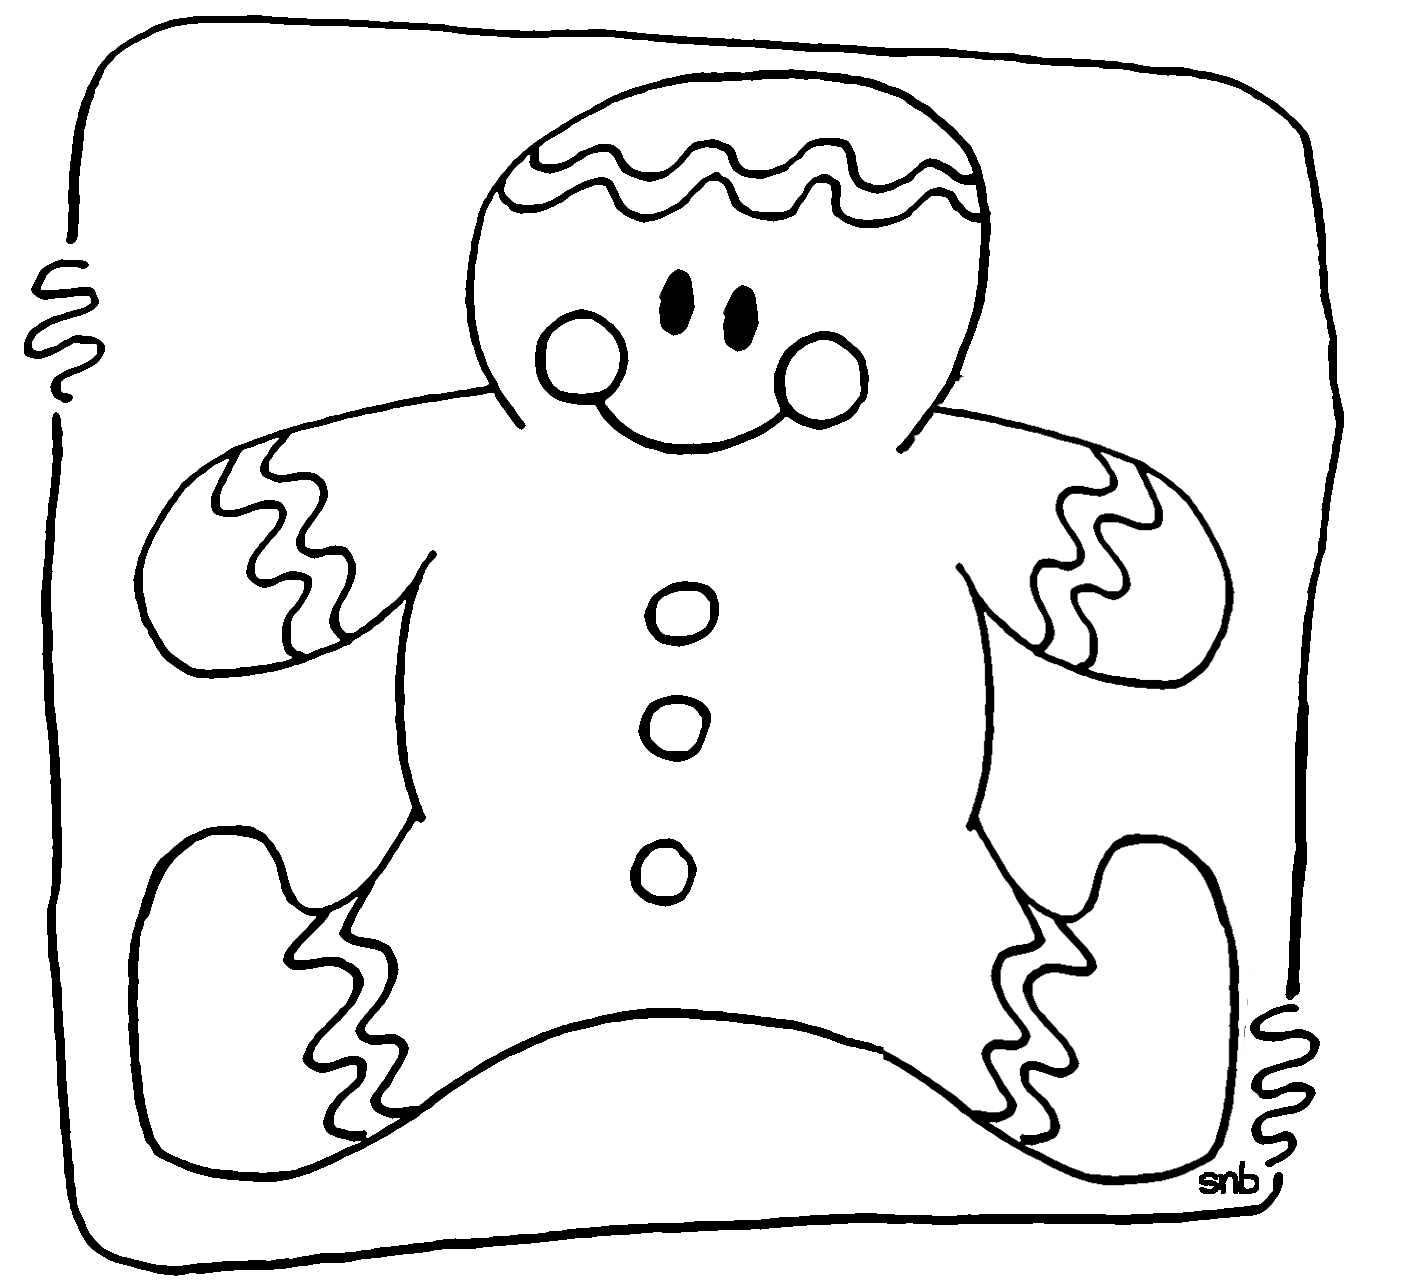 gingerbread coloring page - GINGERBREAD MAN coloring pages Decorated